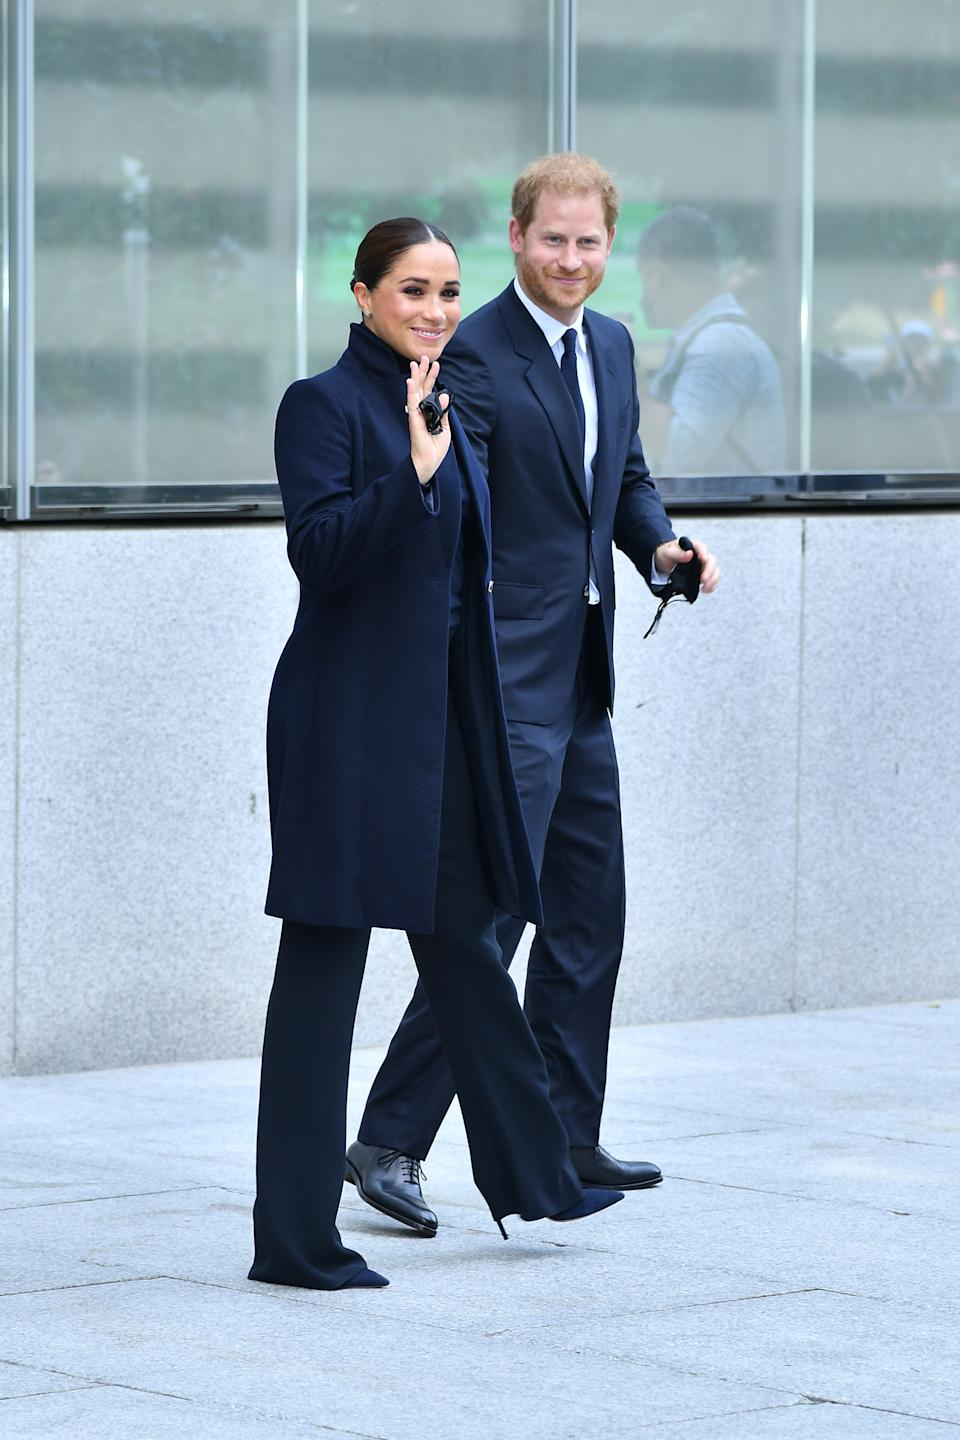 Meghan Markle and Prince Harry, pictured arriving at Visit One World Observatory in NYC on September 23, 2021, have said they'll have no more than two children. (Getty Images)